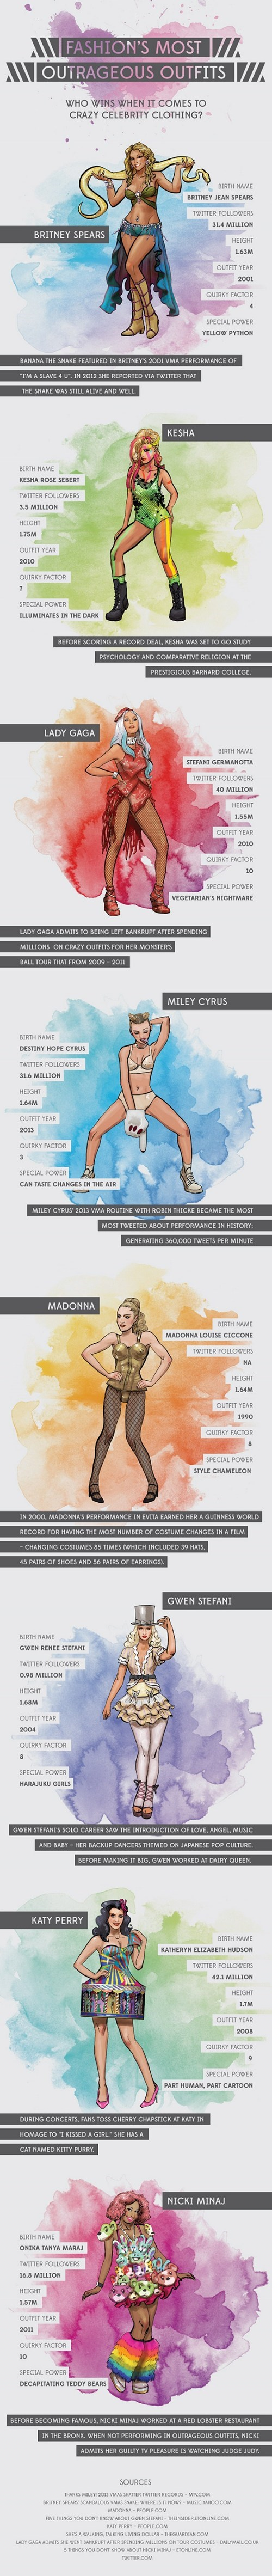 Music fashion infographic celeb - 7844479488